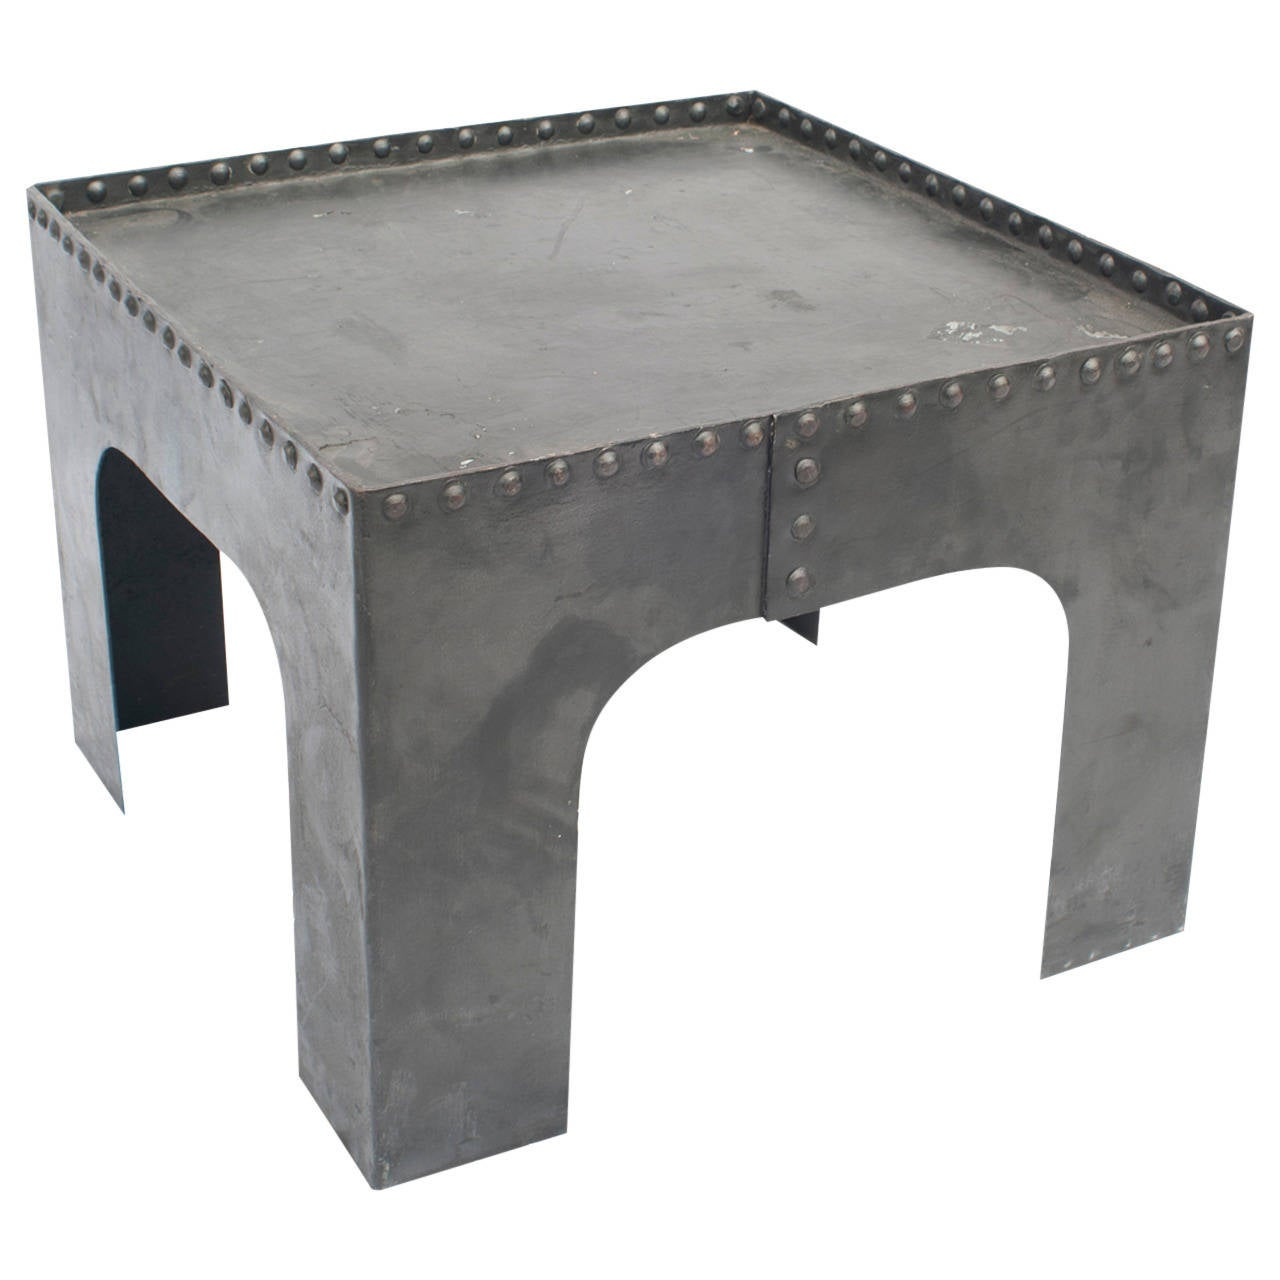 Small Square Industrial Metal Coffee Table For Sale At 1stdibs